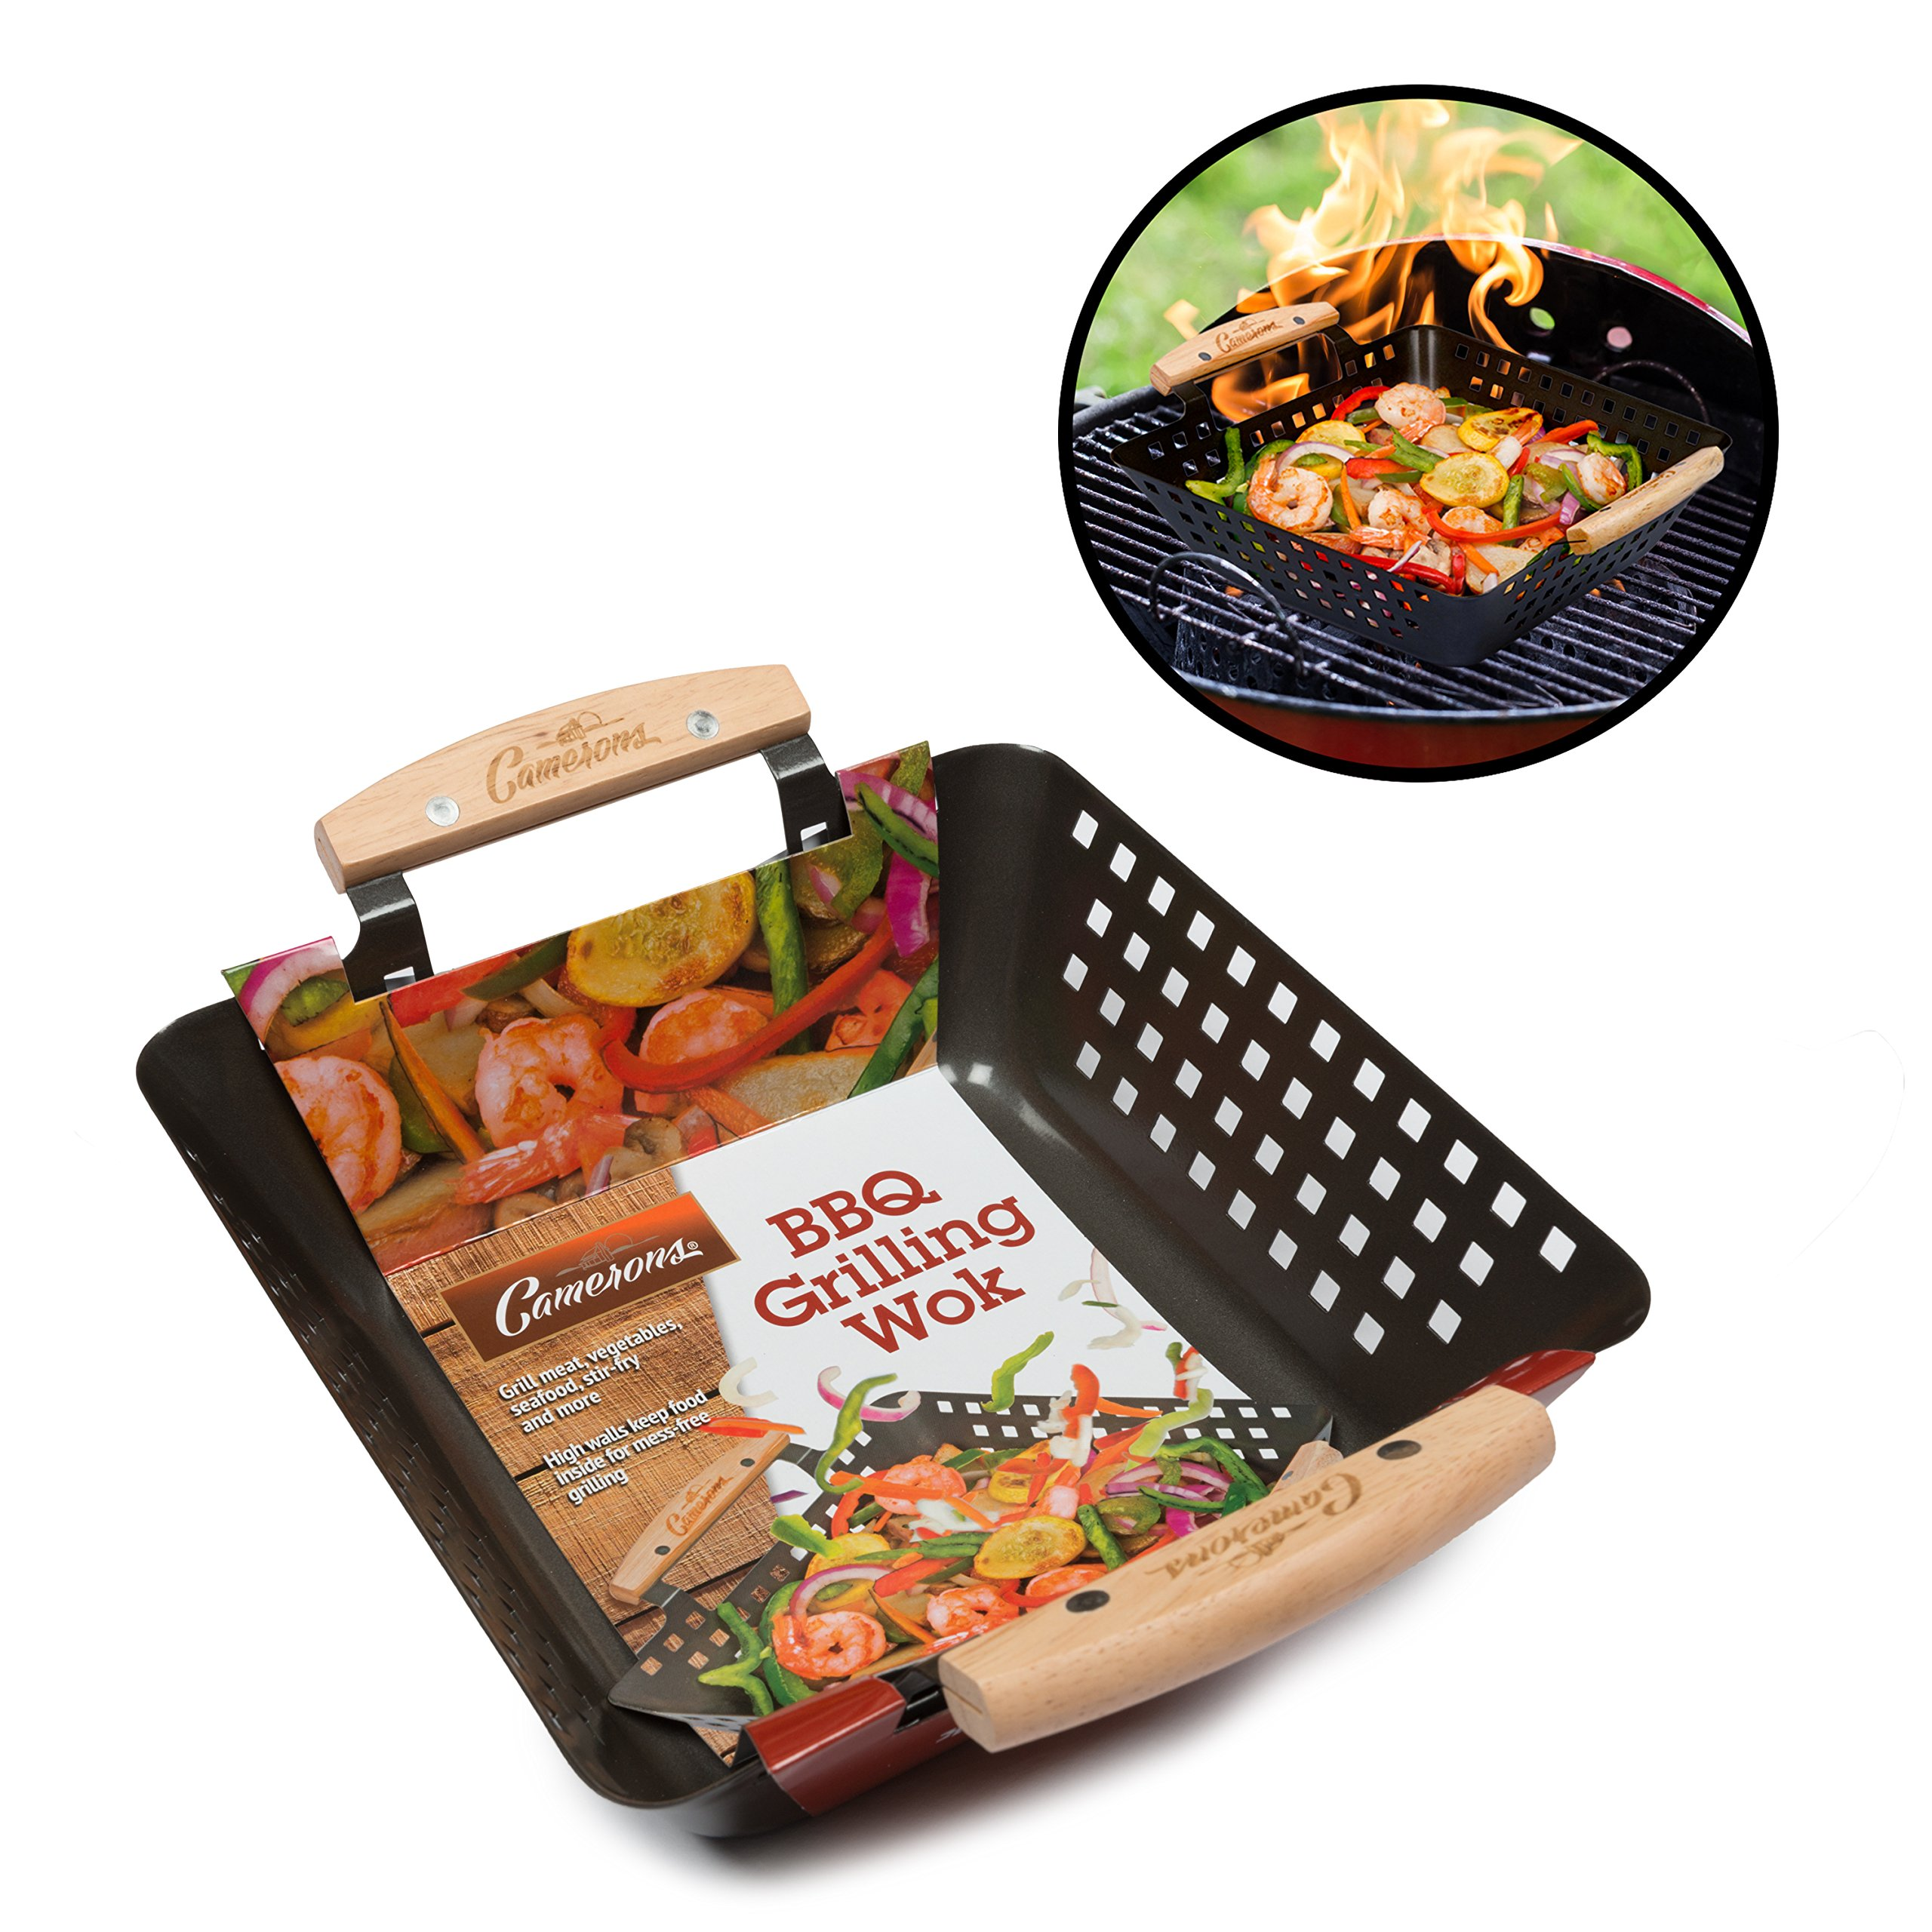 Camerons Products Grill Basket Non Stick Bbq Barbecue Grilling Wok W Heat Resistant Handles For Meat Vegetables And Seafood